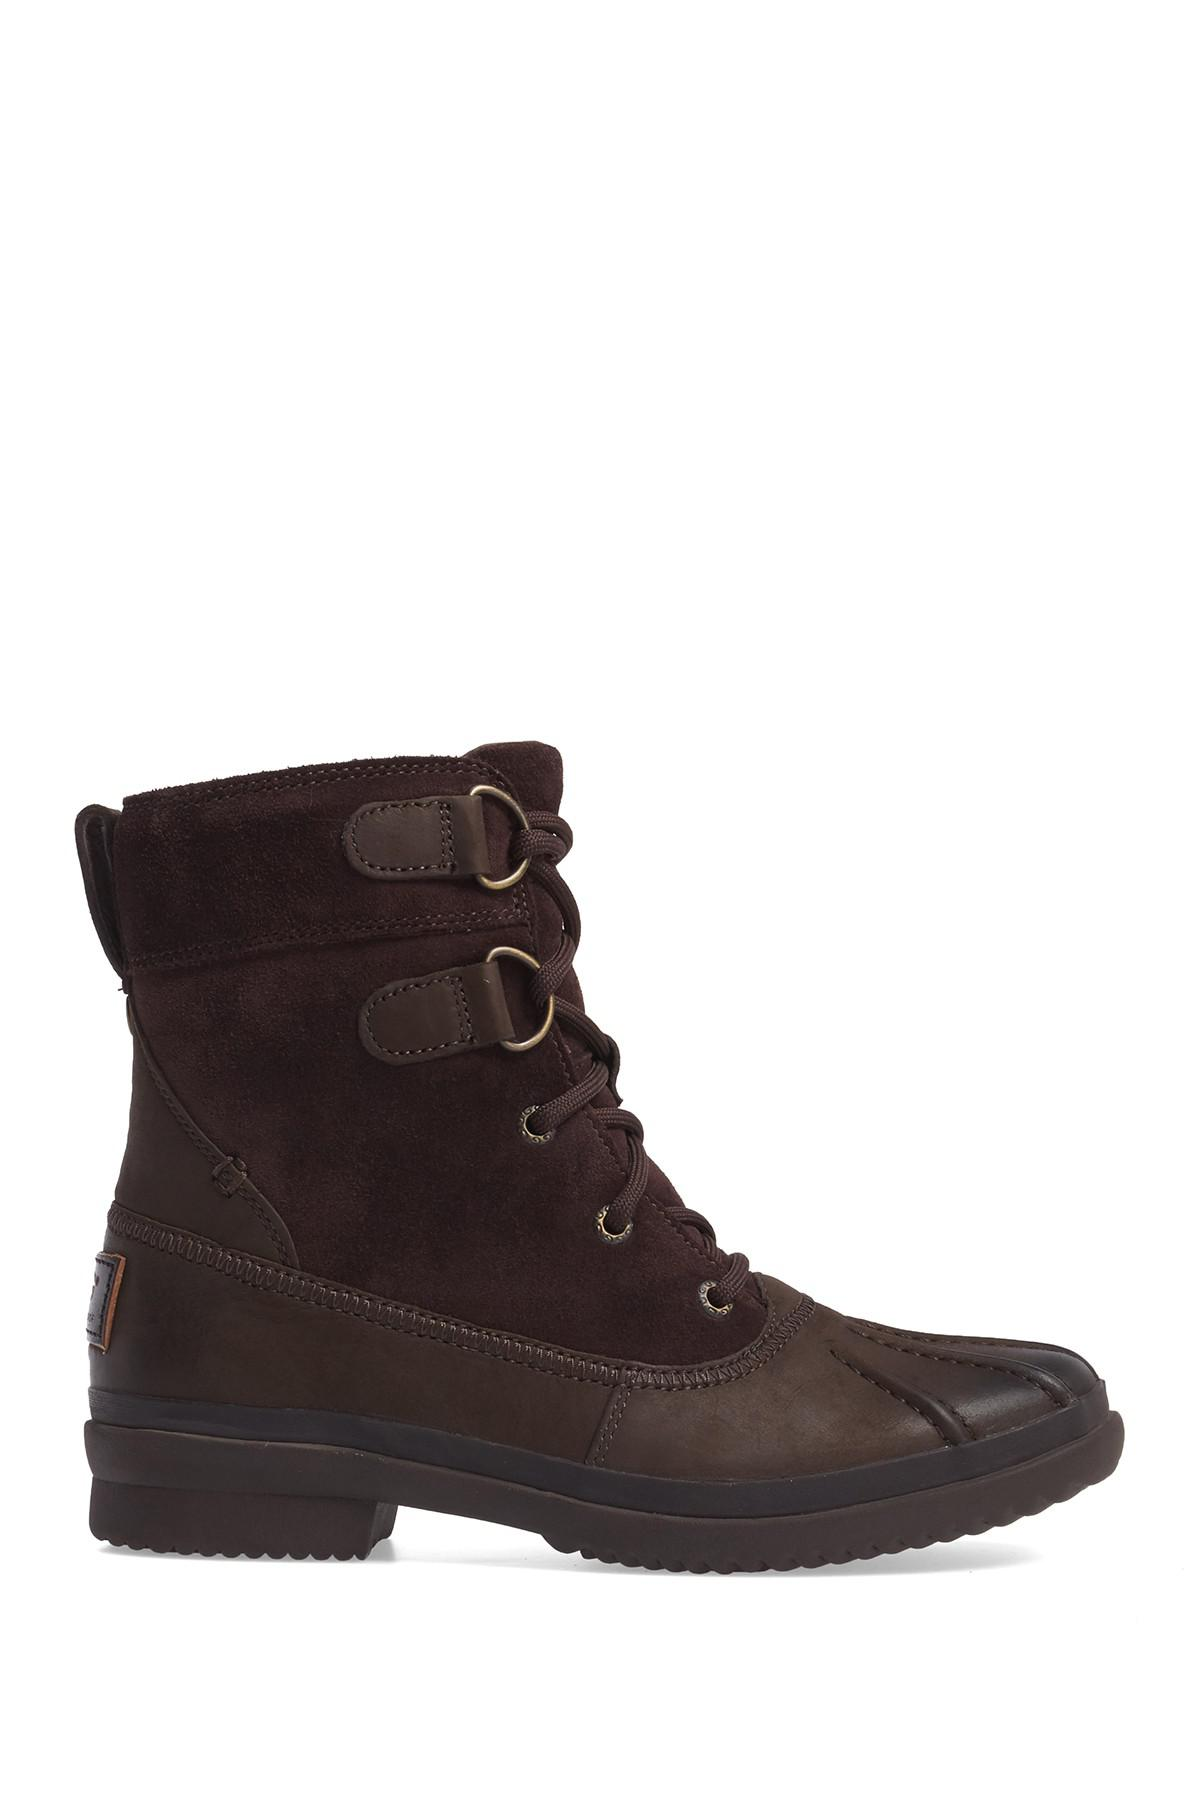 5de5328e11e Lyst - UGG Azaria Waterproof Leather Boot in Brown